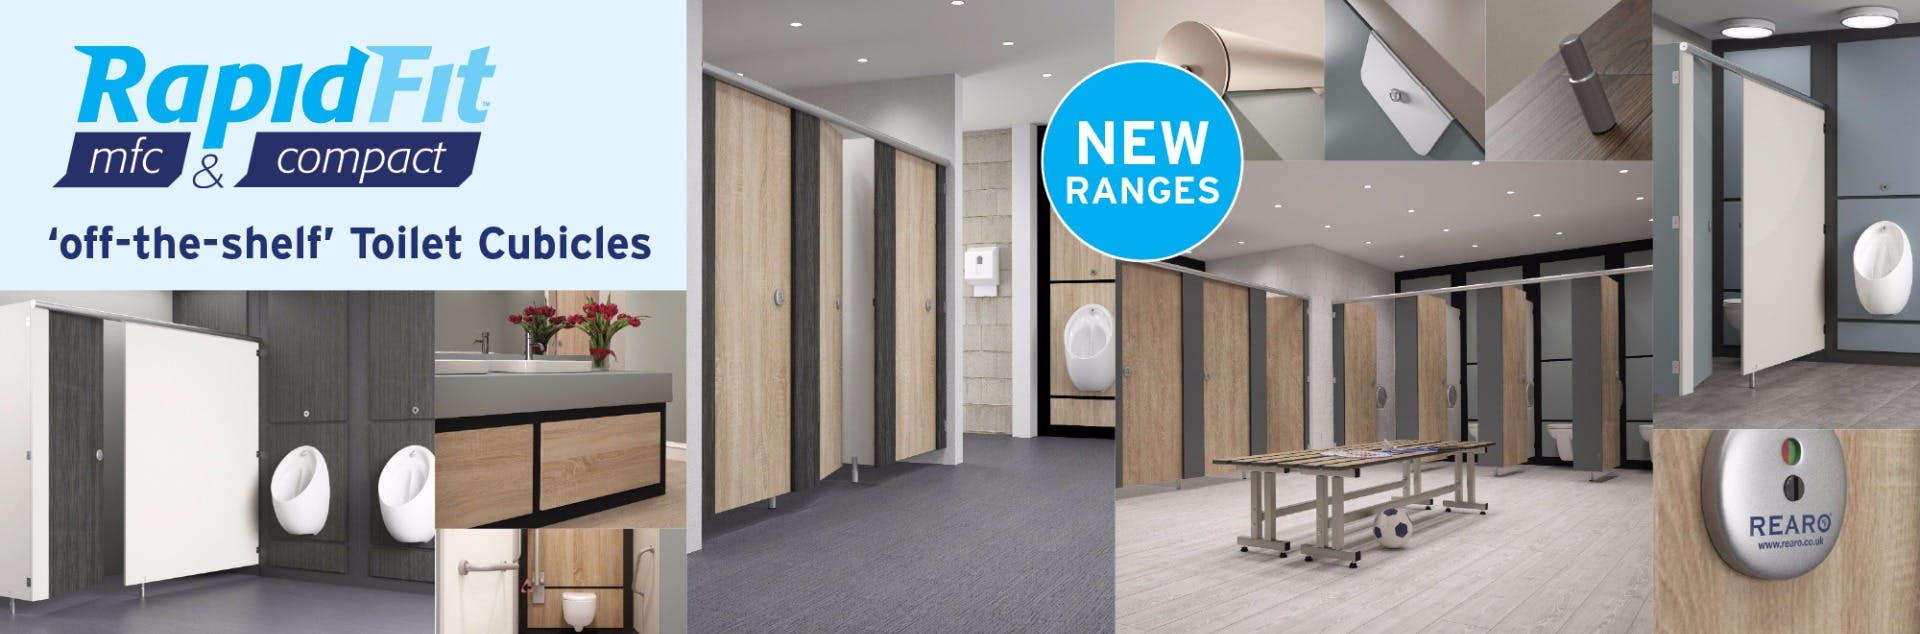 Rapidfit 'off the shelf' Toilet Cubicles